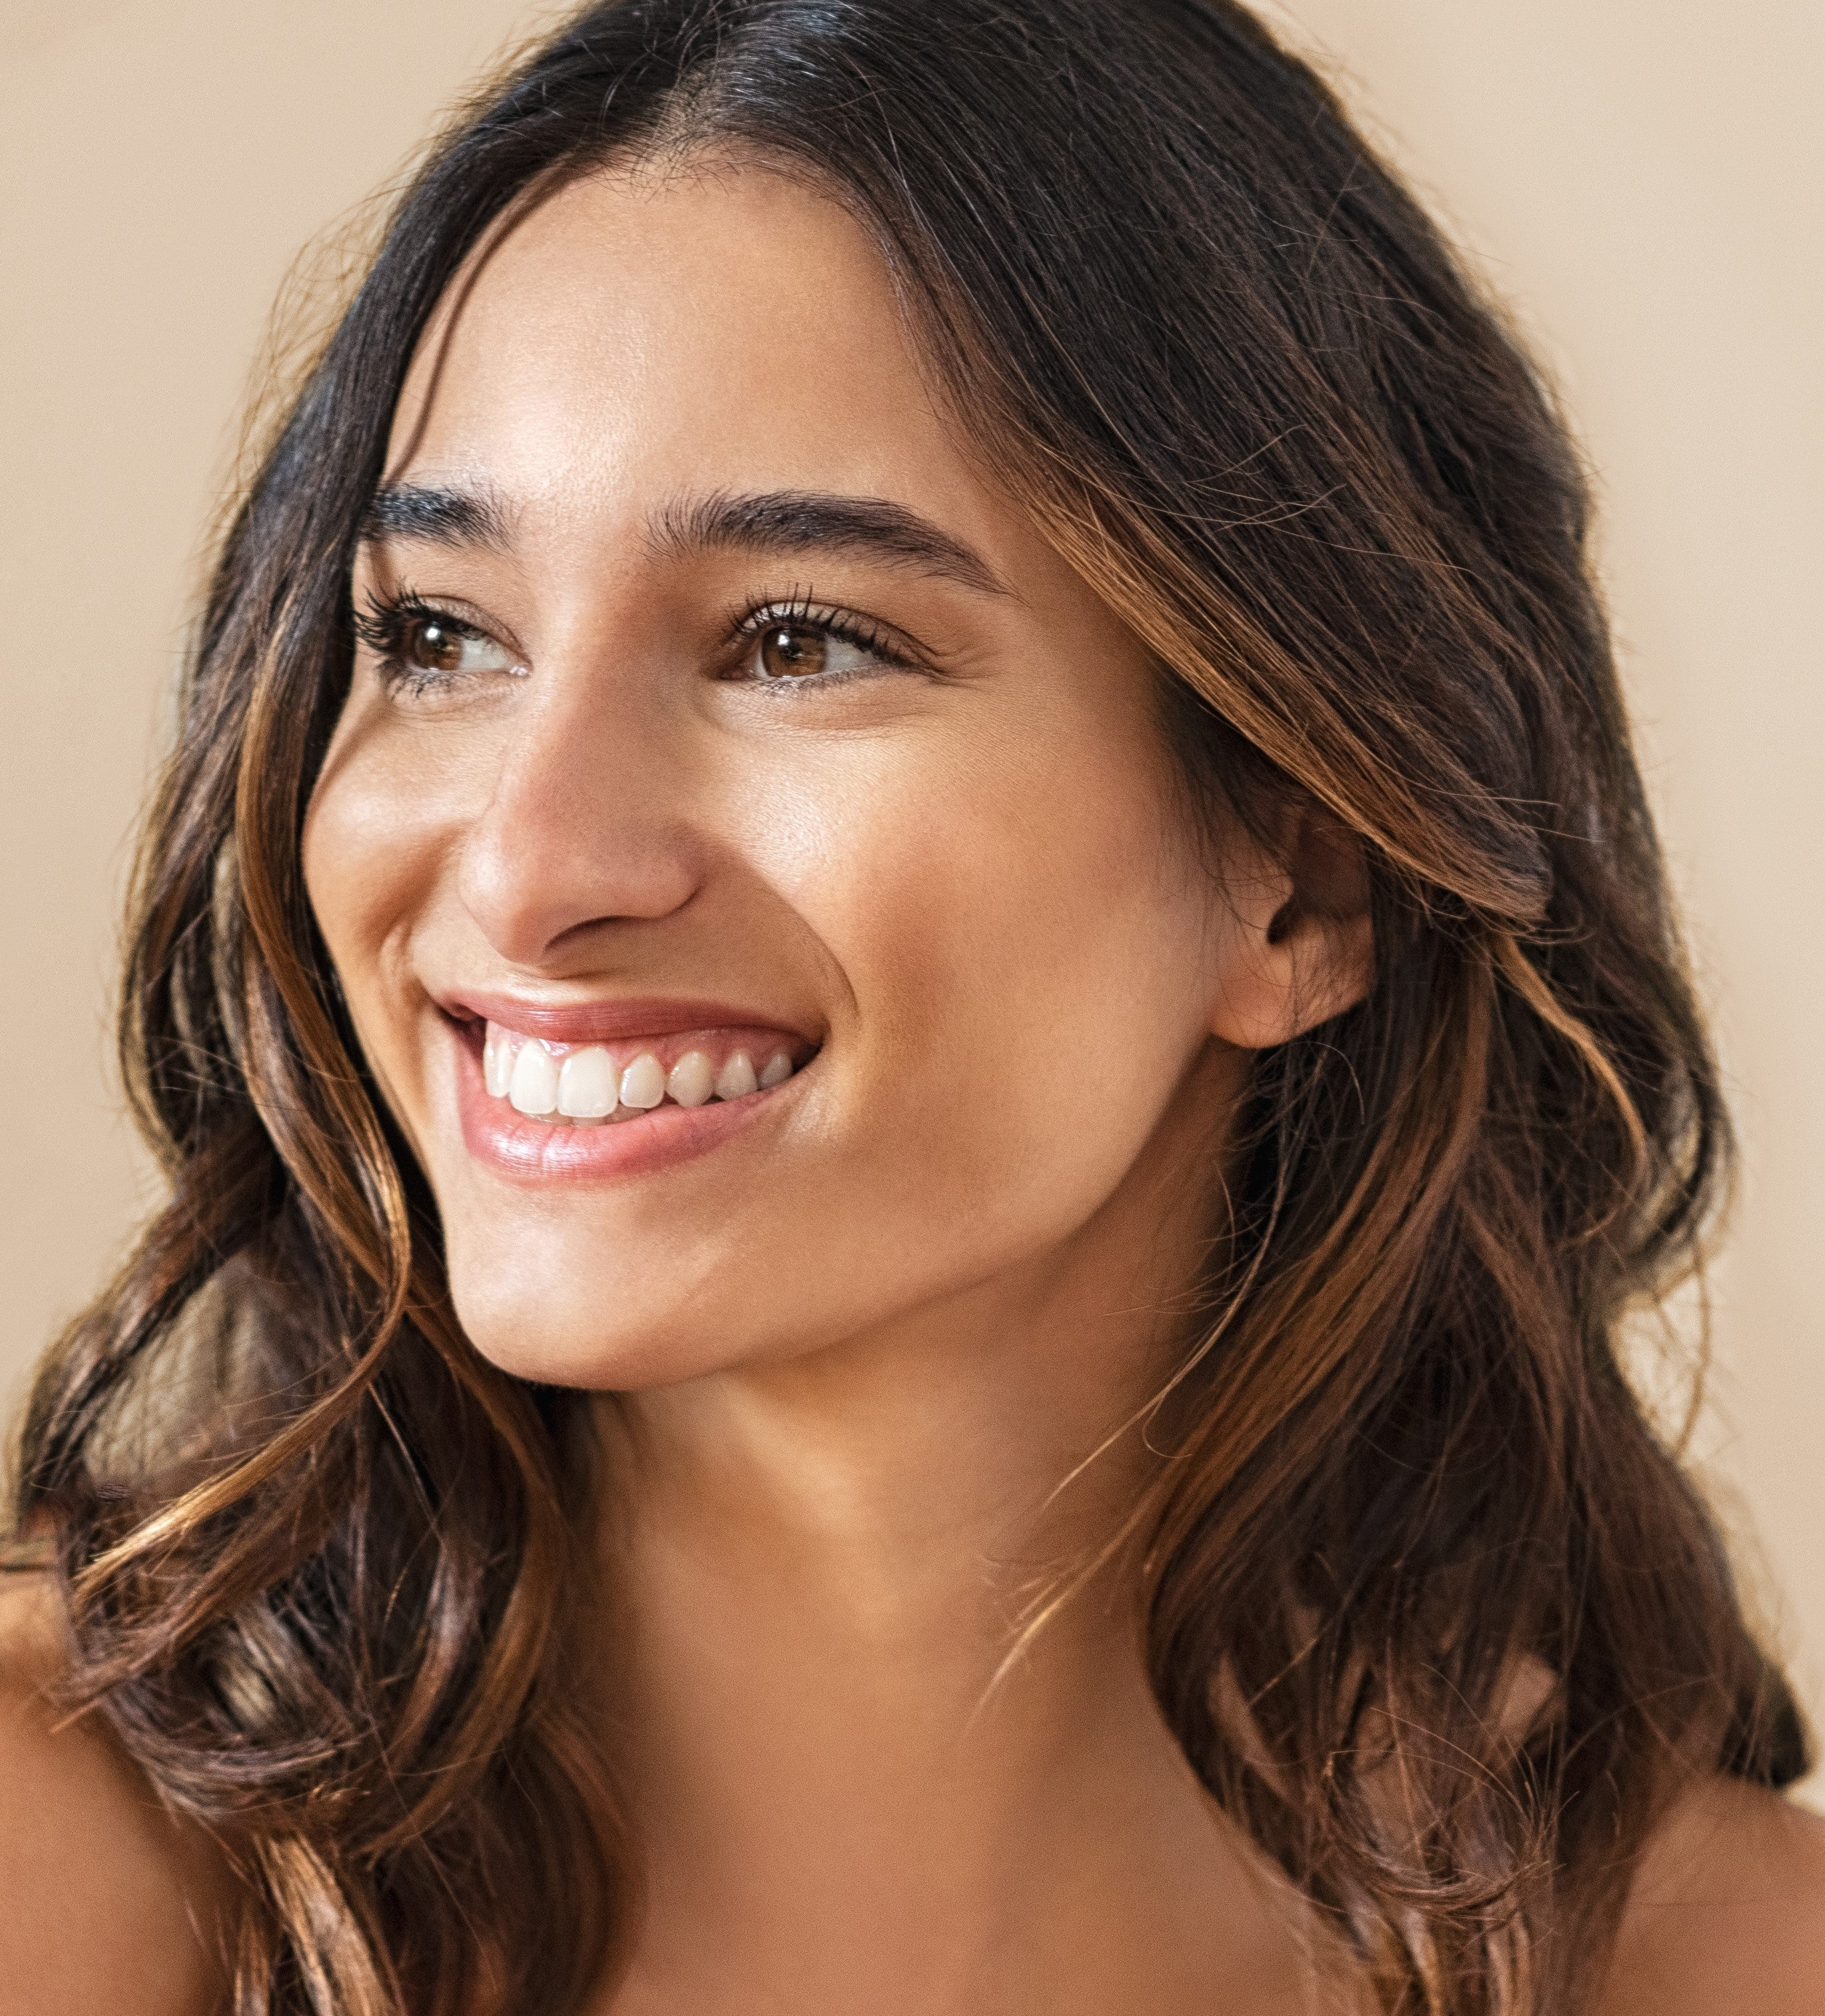 Oily skin tips from dermatologist